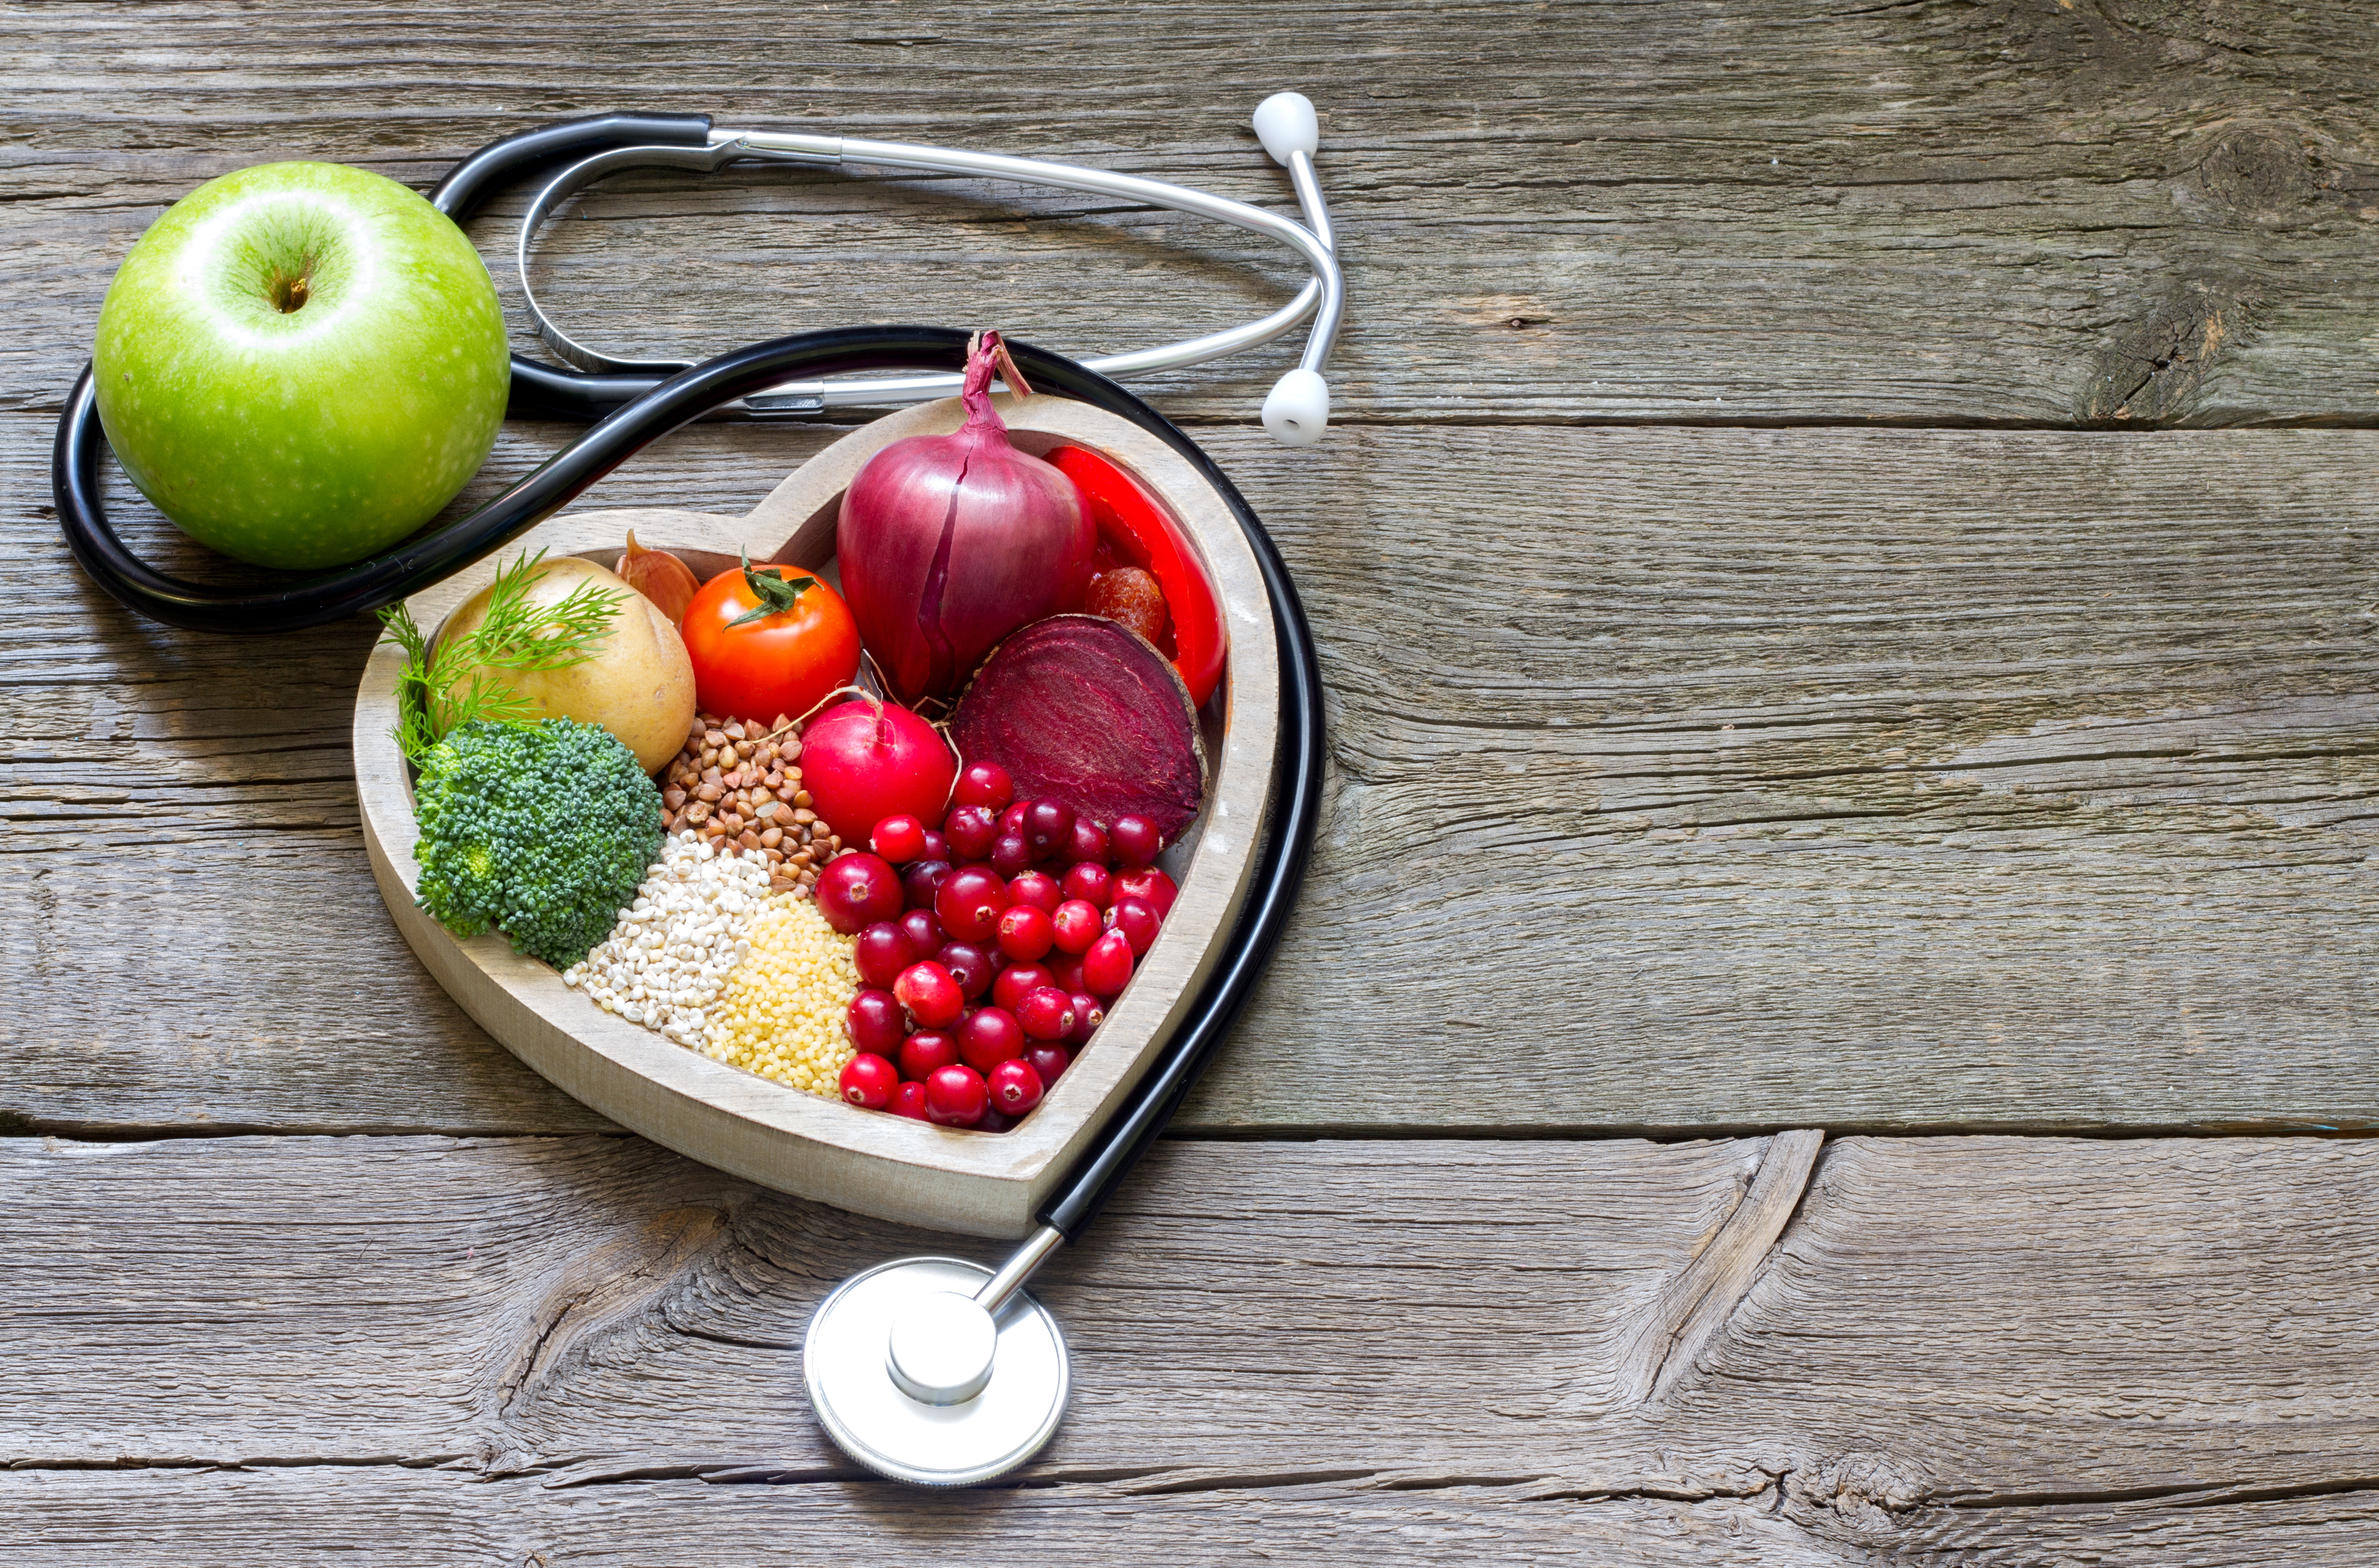 How to lower your LDL cholesterol and increase your HDL cholesterol